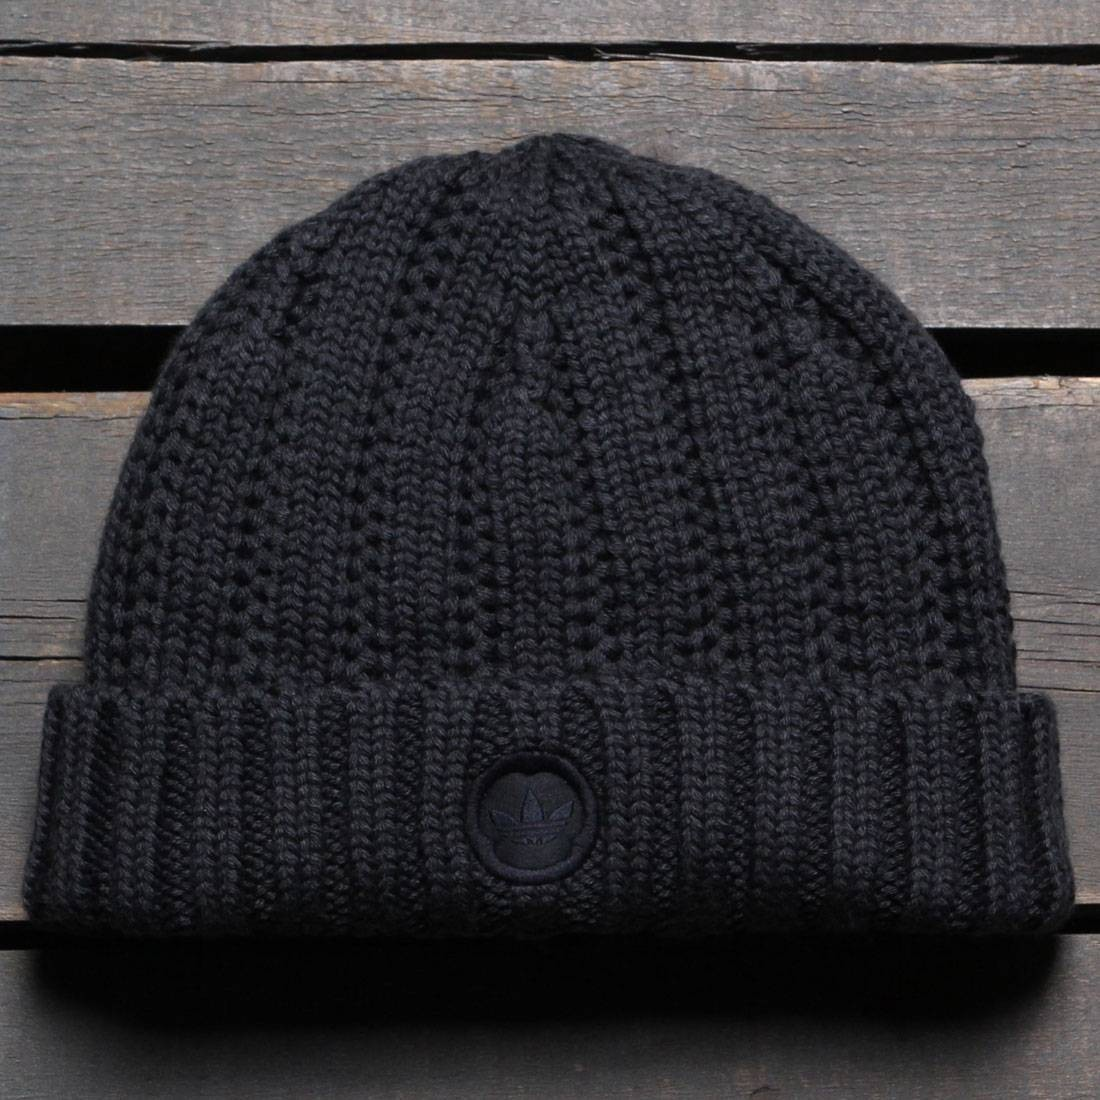 【送料無料】ADIDAS CONSORTIUM X WINGS AND HORNS BEANIE